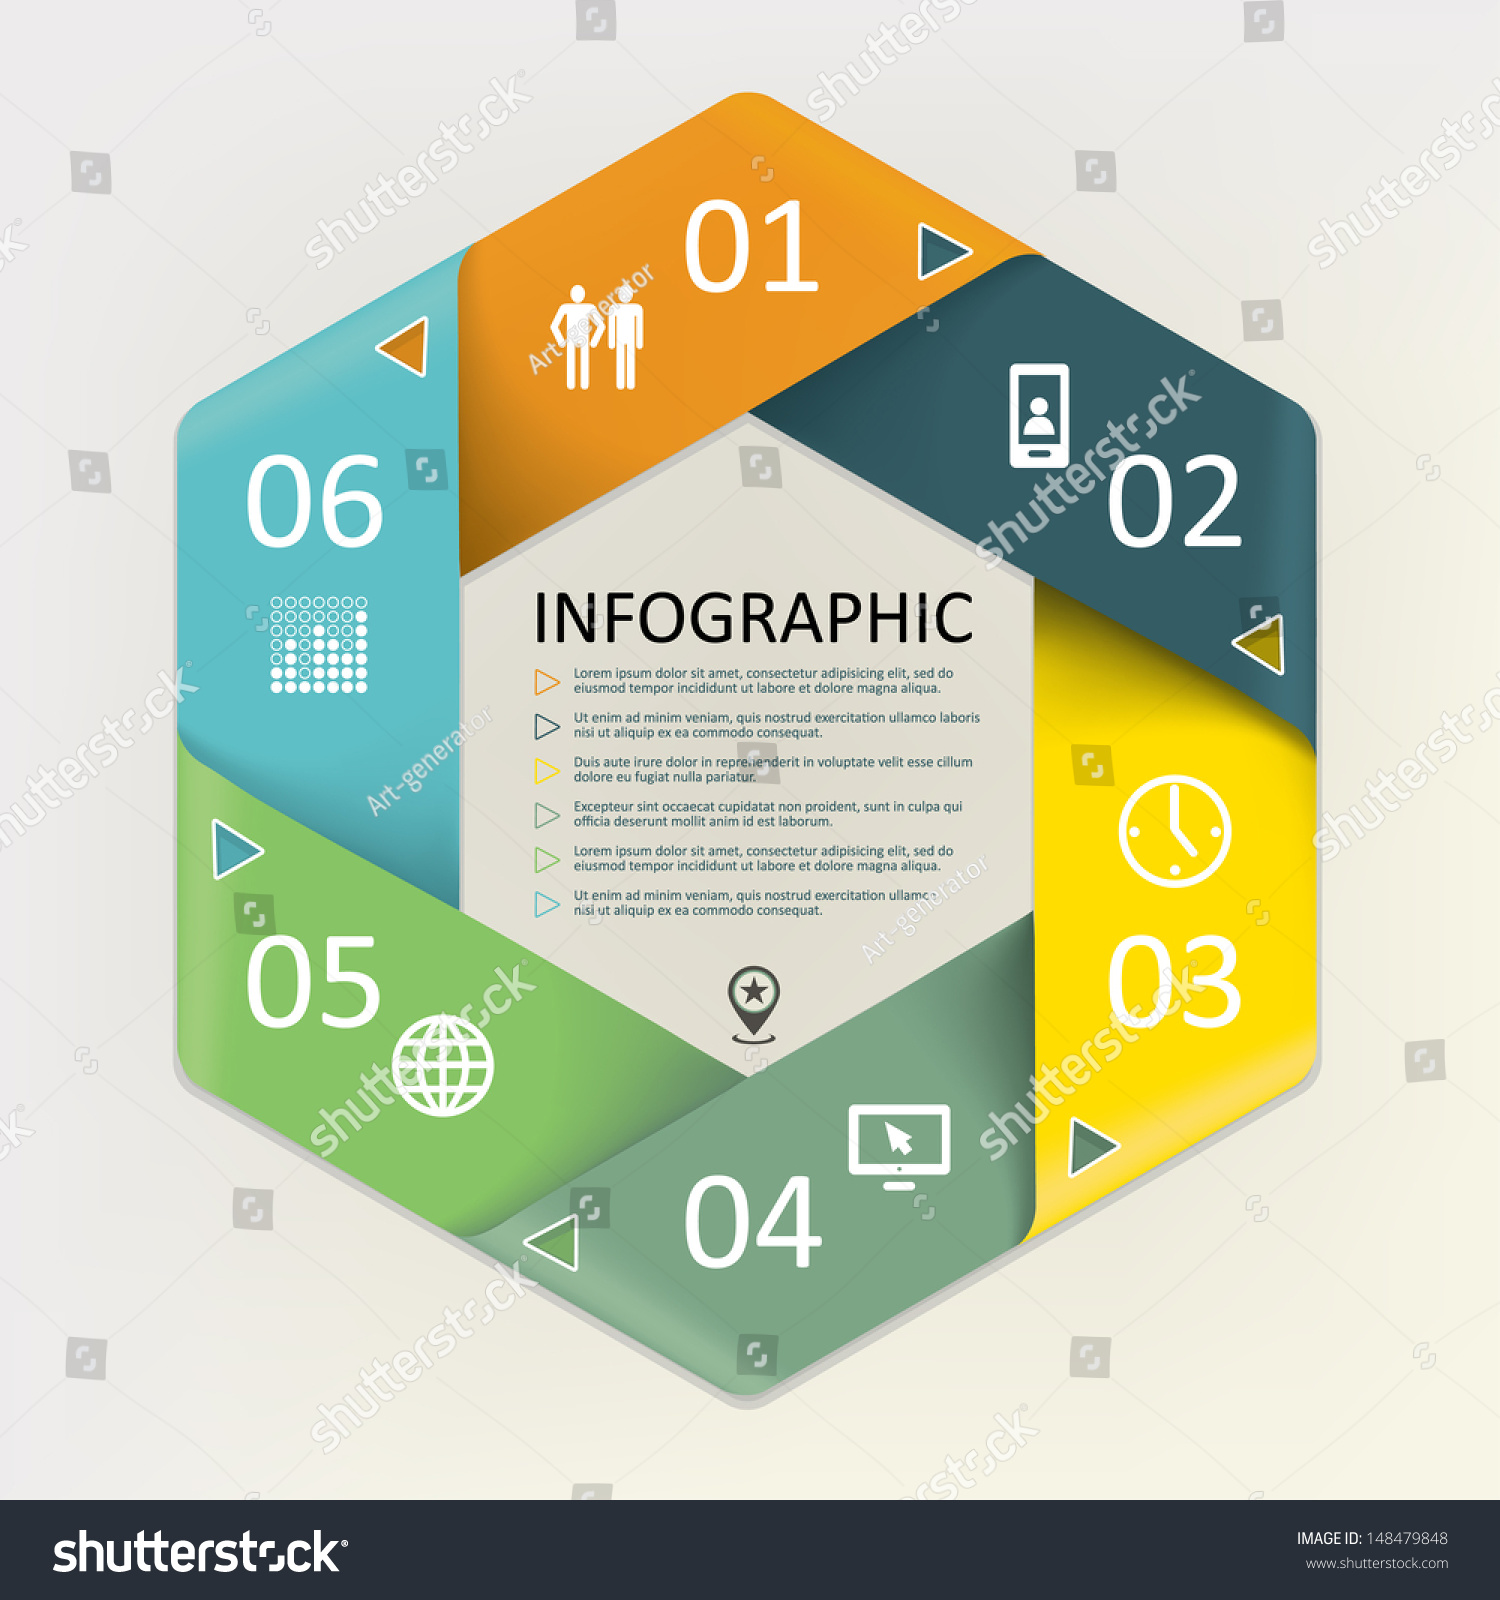 Infographic The Key Economic Policies Put Forward By: Infographic Circular Cyclic Six Steps Process Stock Vector